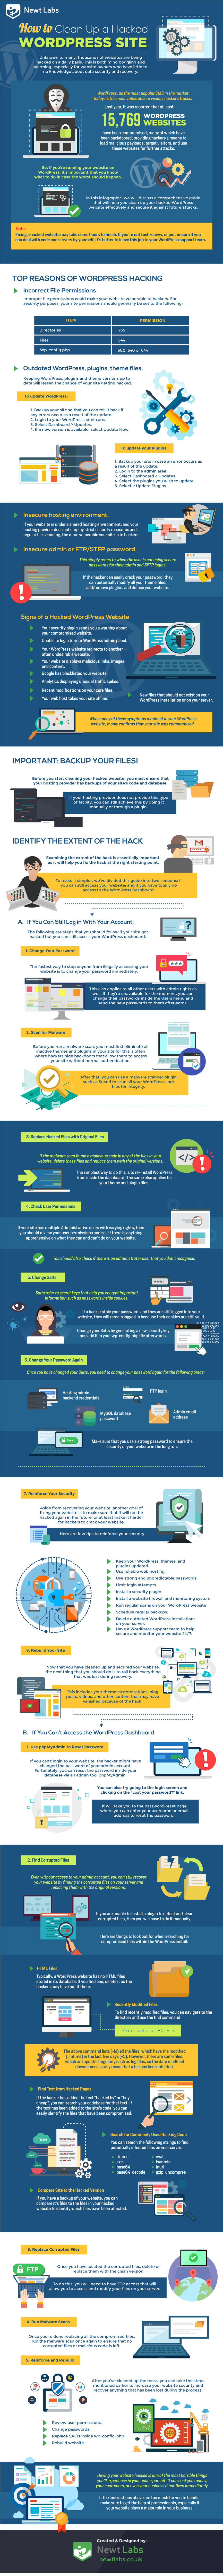 How to Clean Up a Hacked WordPress Site - Infographic